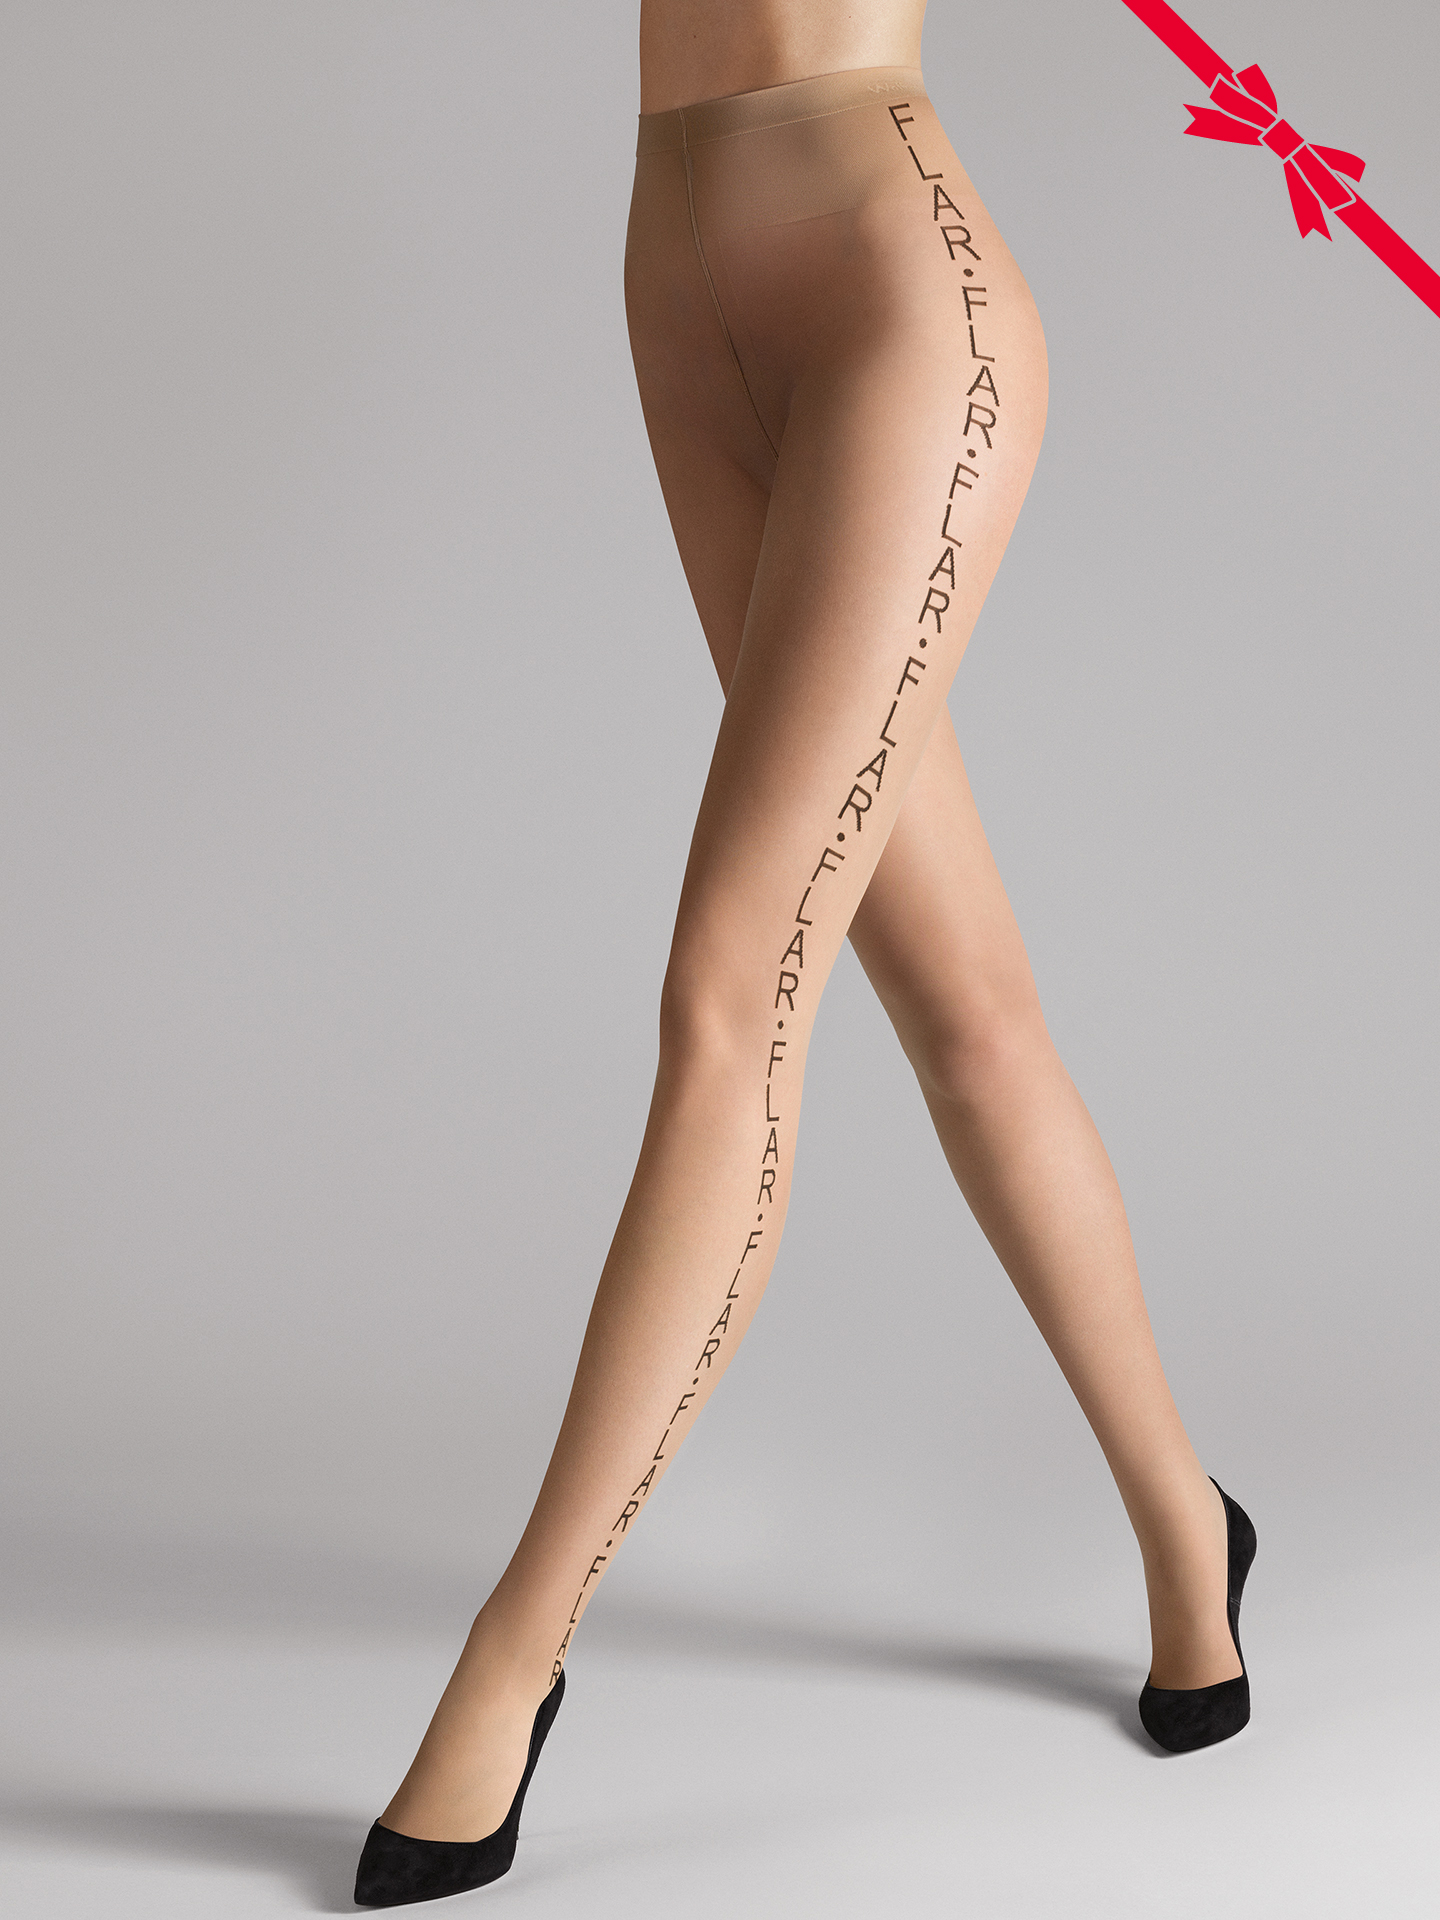 Wolford Art Tights - 9784 - M